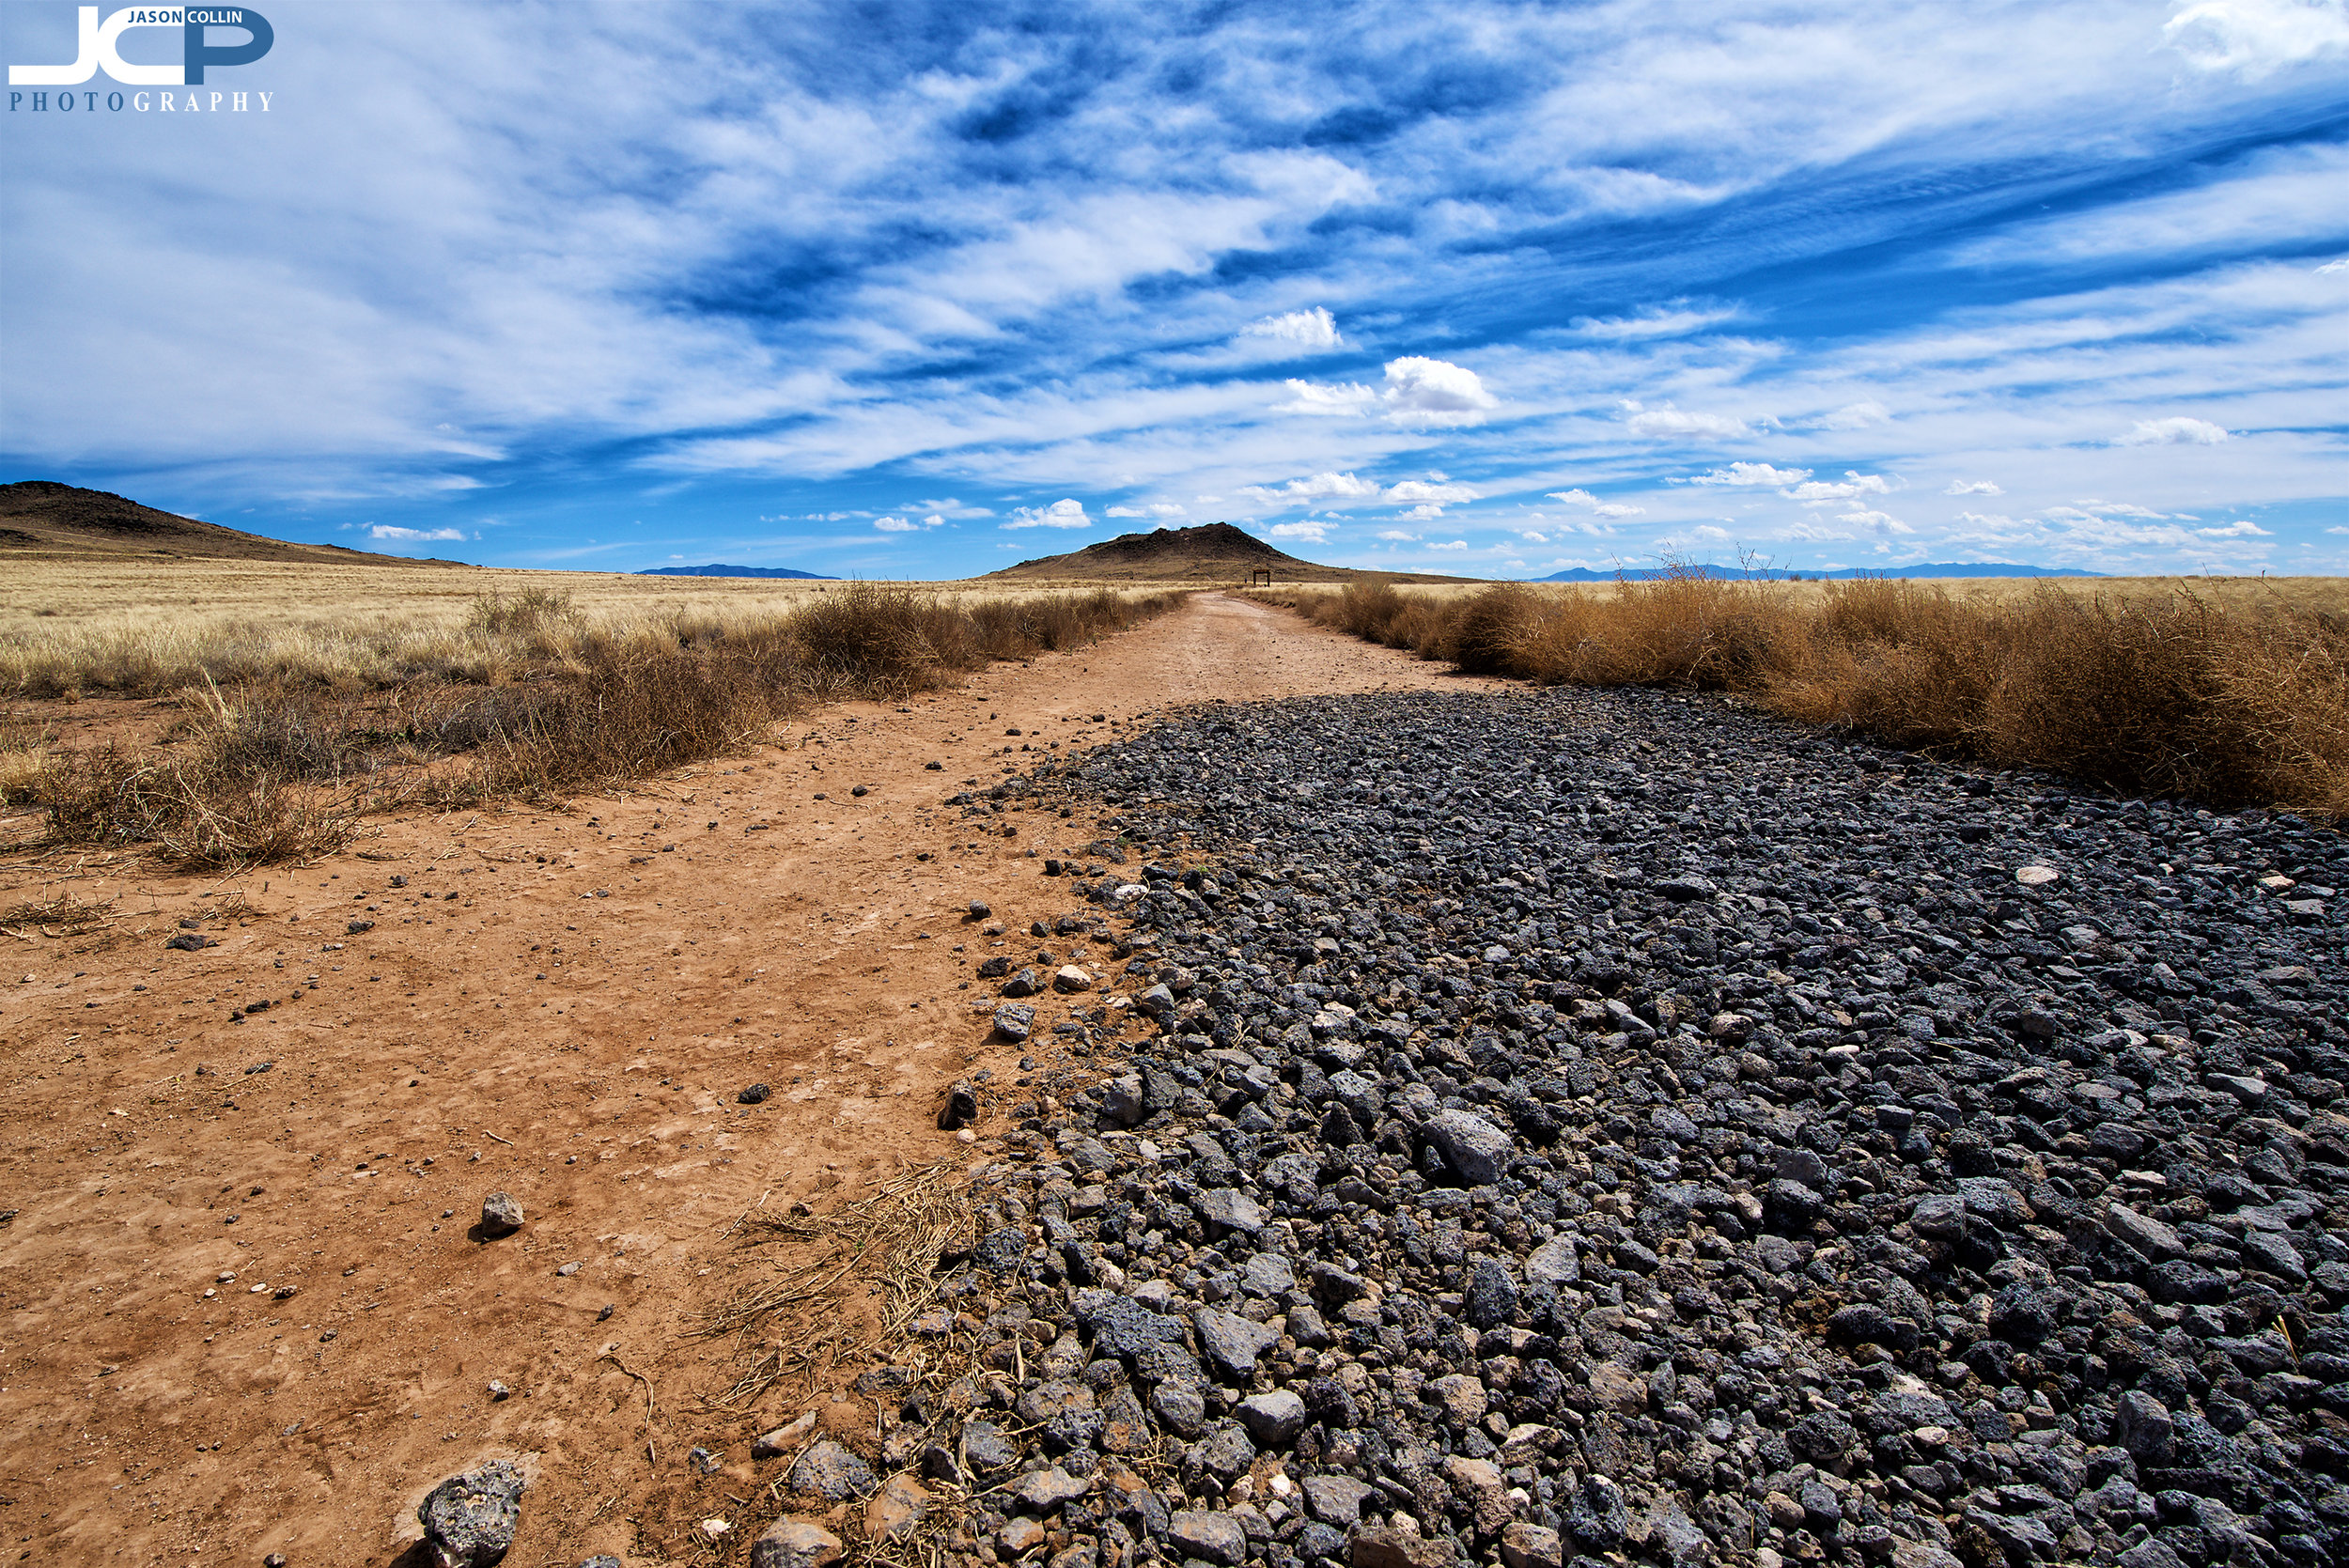 Entry to Black Volcano at Petroglyphs in New Mexico - Nikon D750 with Tamron 15-30mm lens